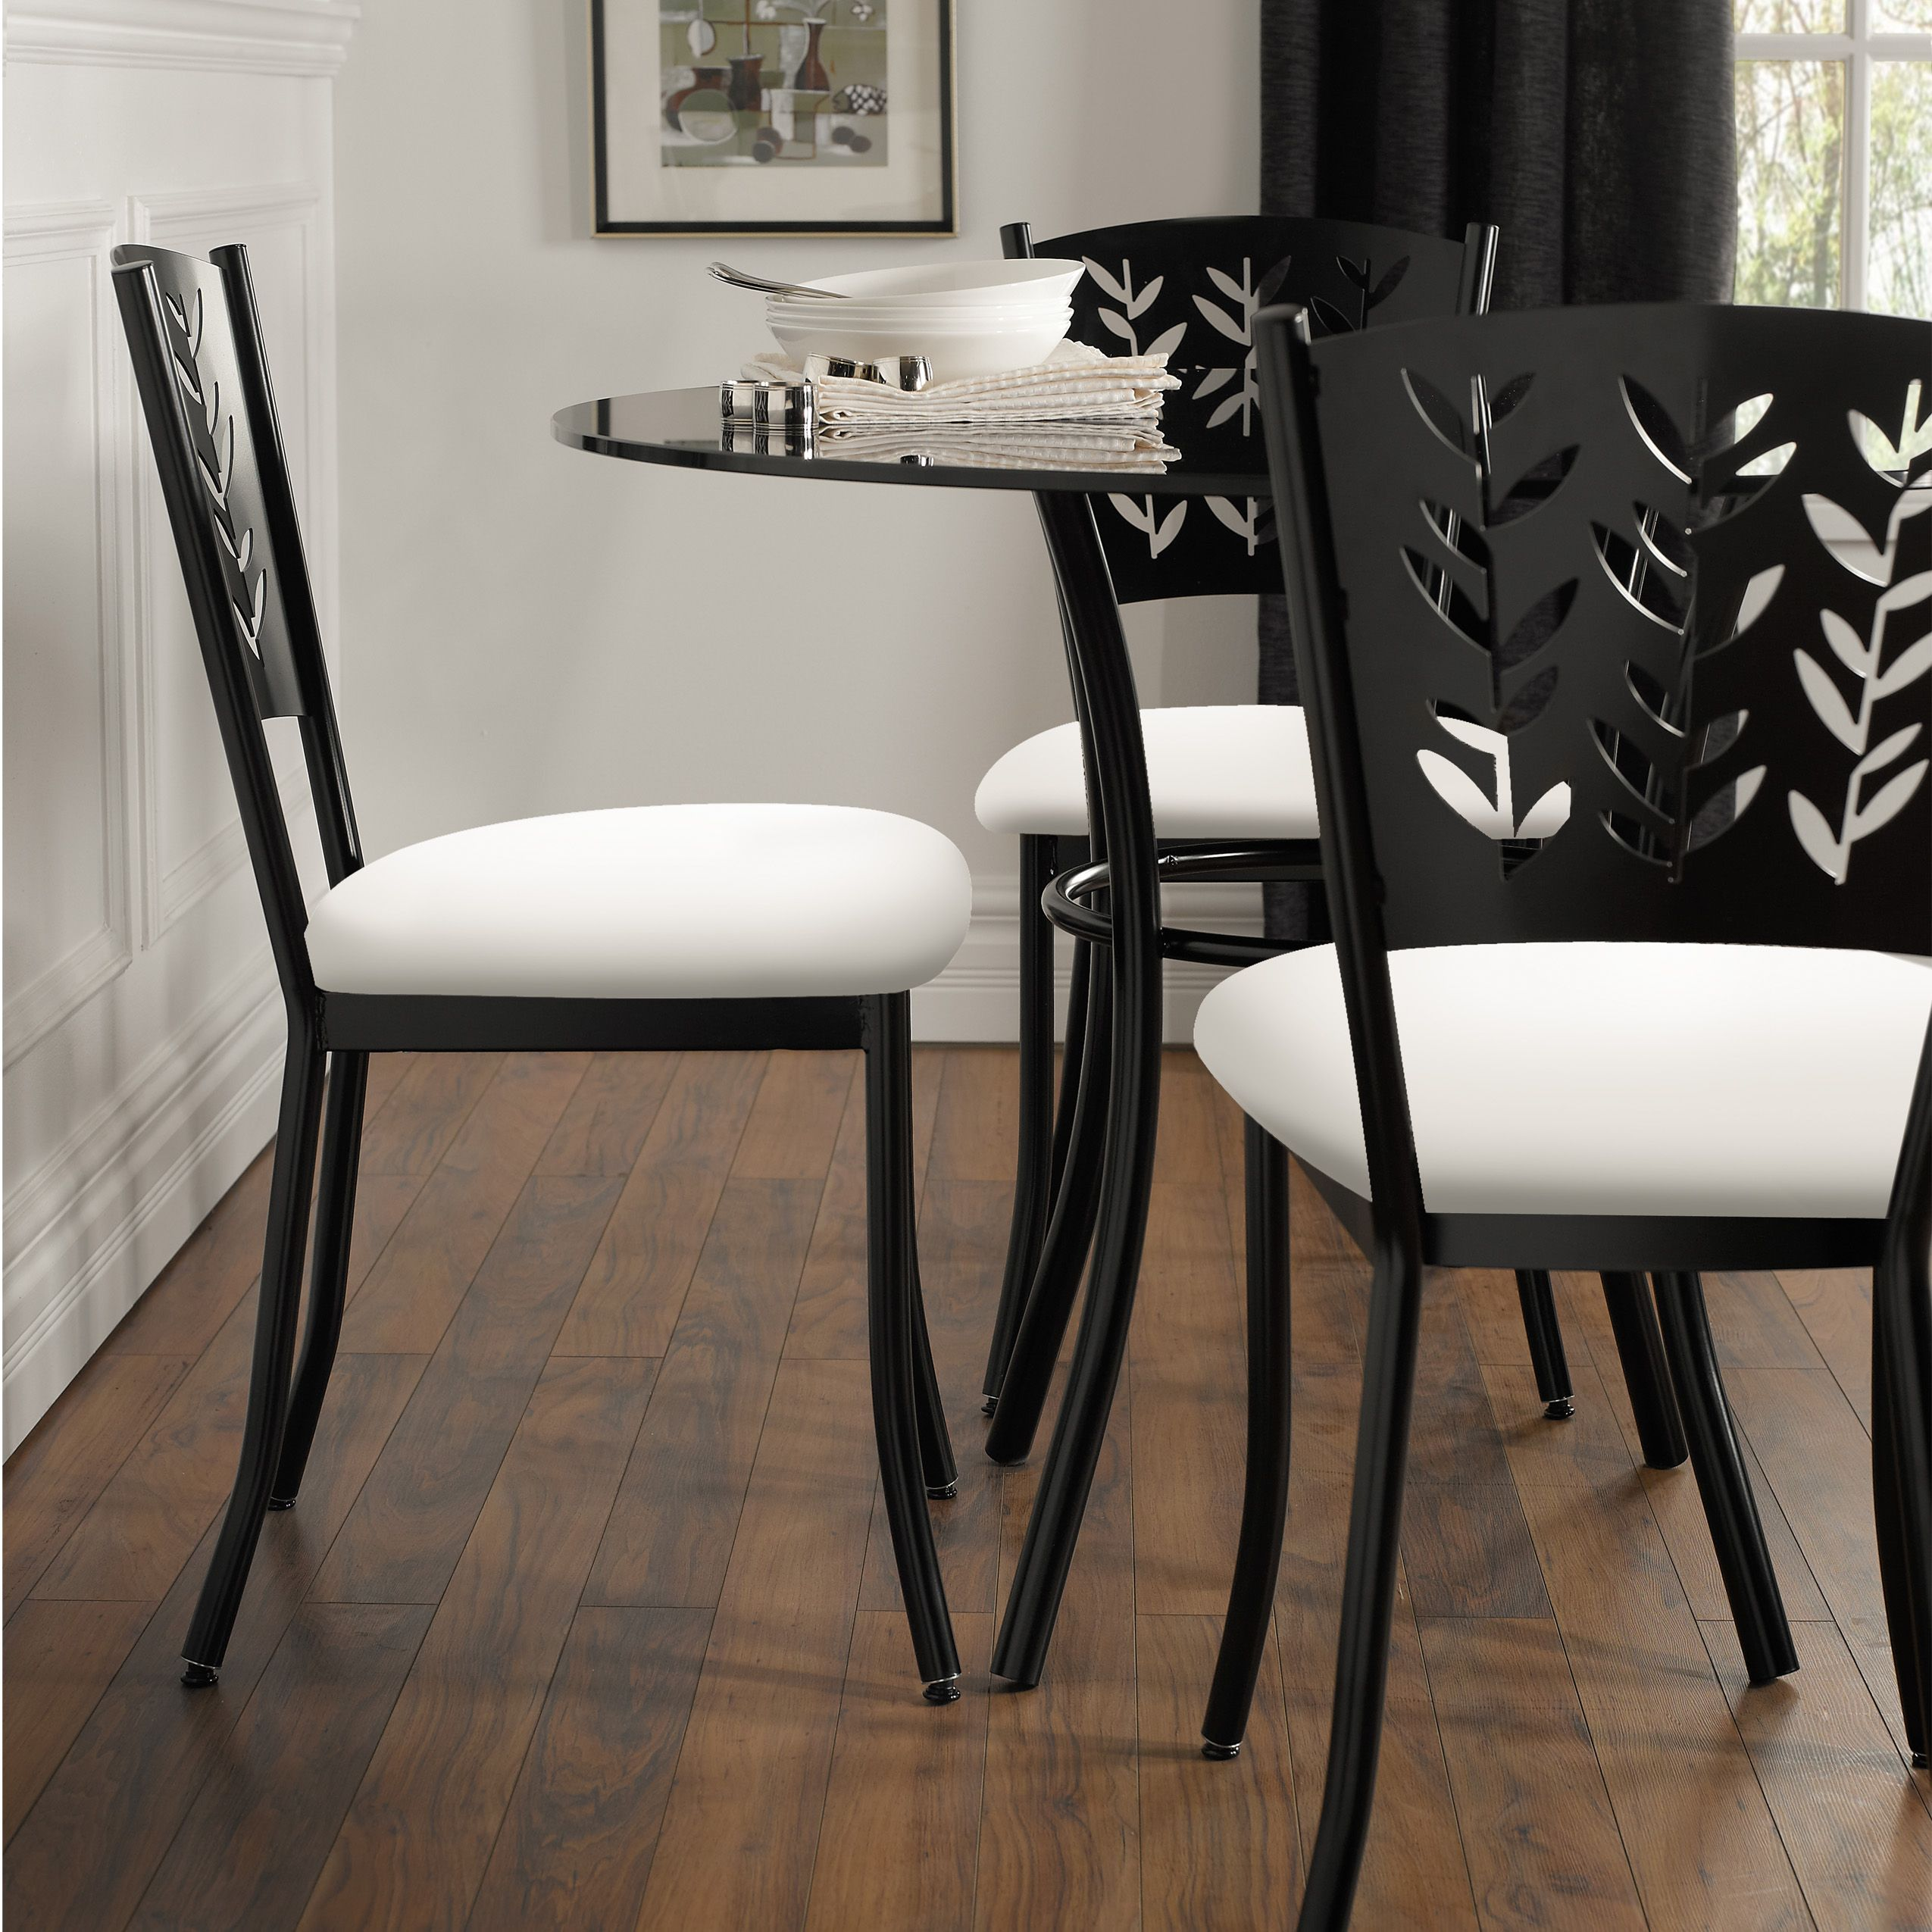 AMISCO Mimosa Chair Furniture Kitchen Countryside